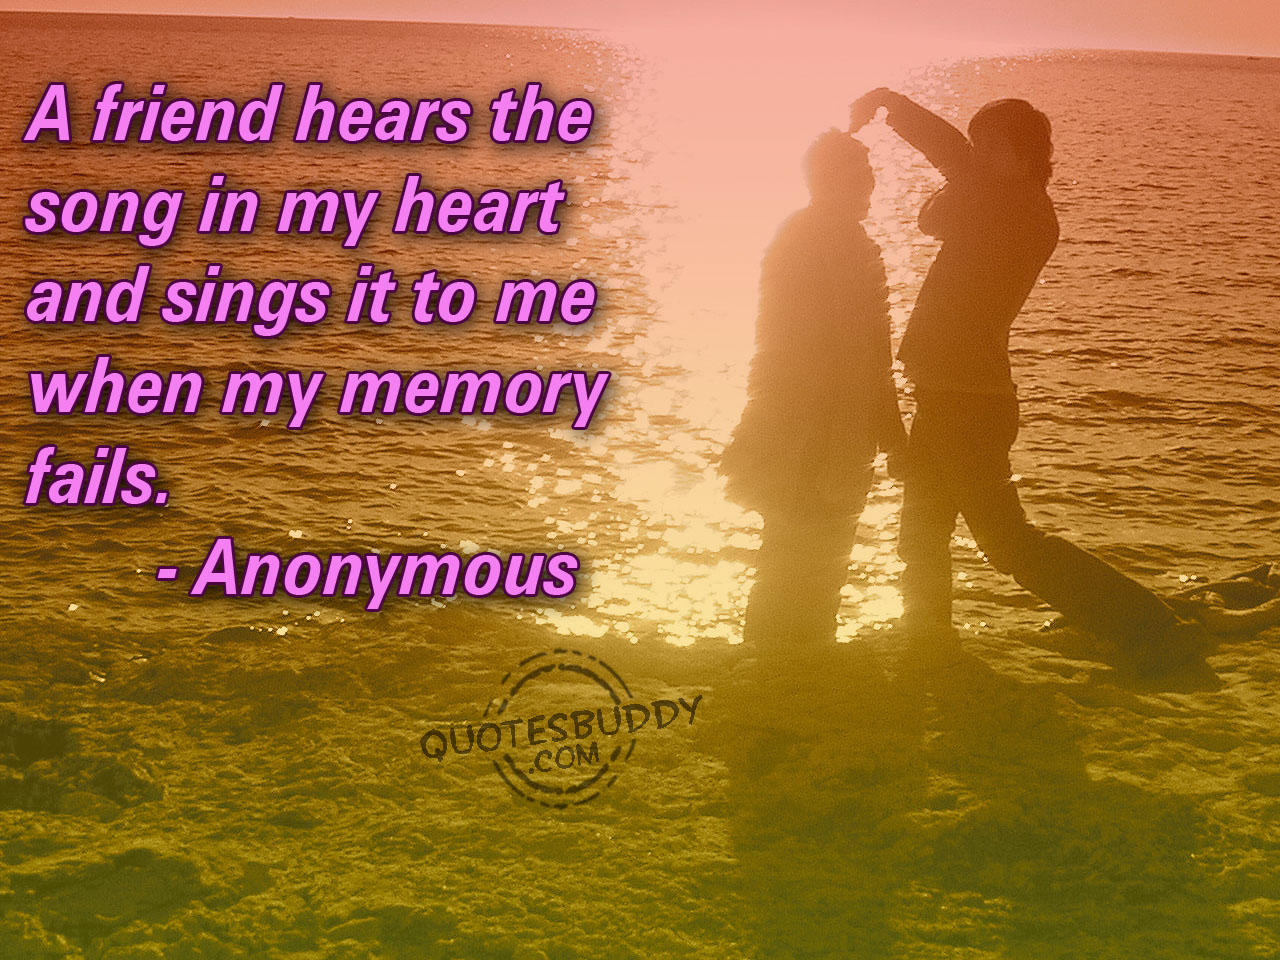 a friend hears the song in my heart and sings it to me when my memory fails.